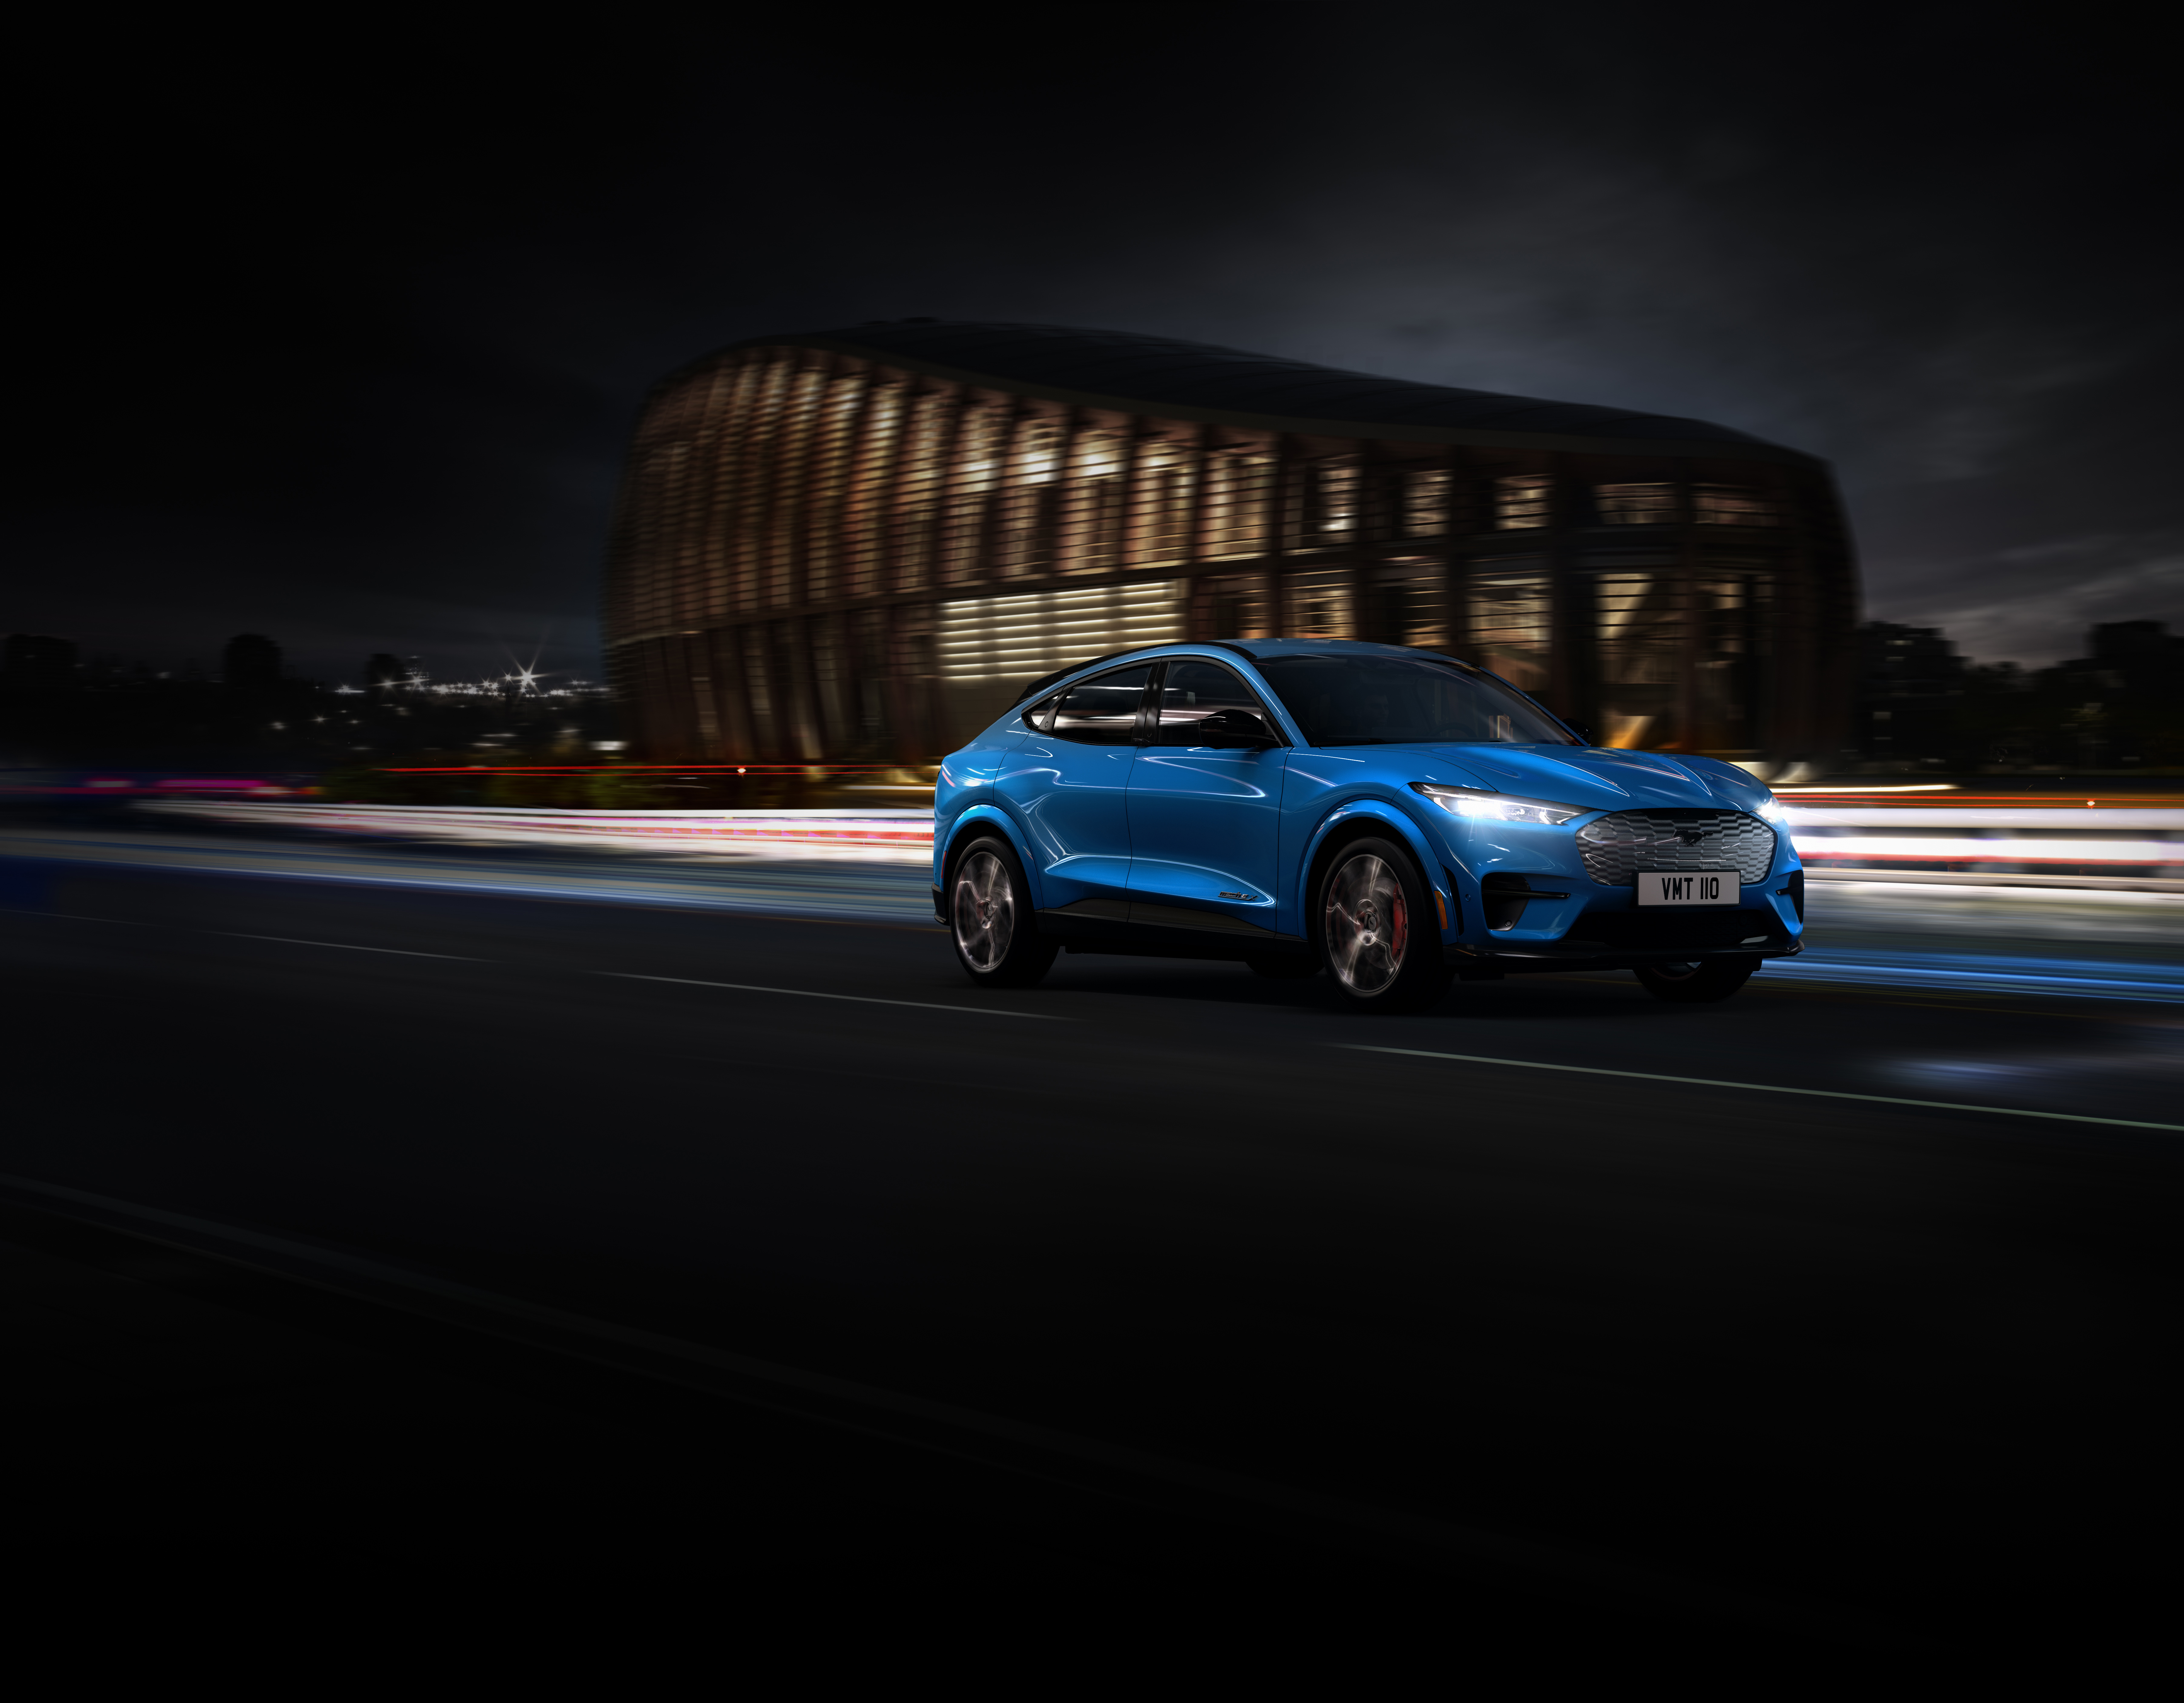 2021 ford mustang mach e gt performance edition 1577652736 - 2021 Ford Mustang Mach E GT Performance Edition - 2021 Ford Mustang 4k wallpaper